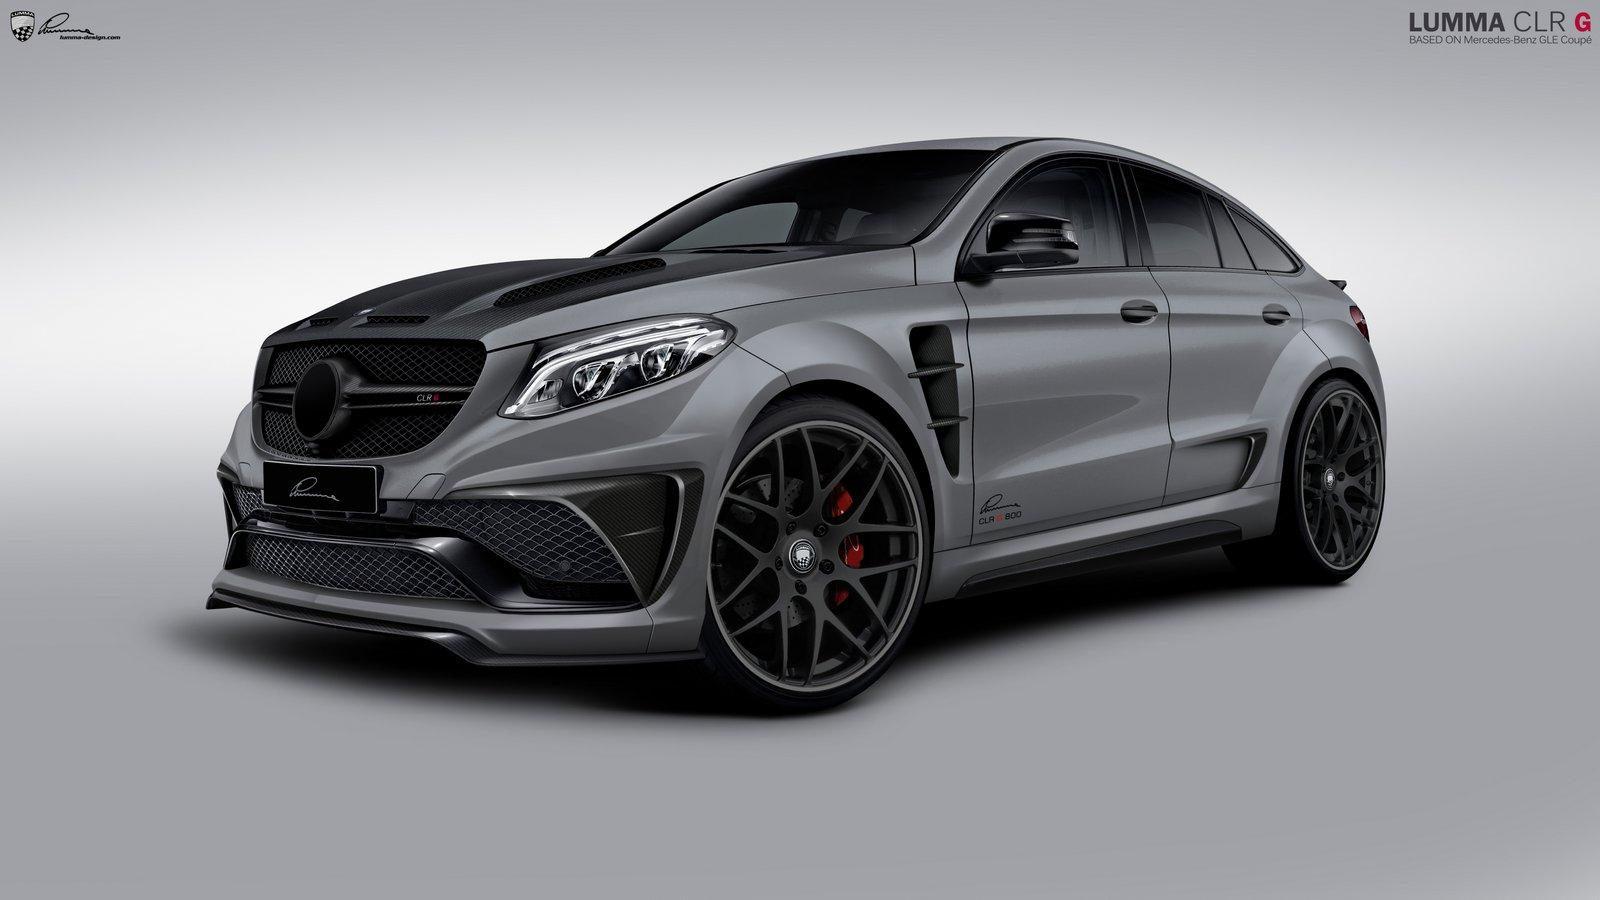 lumma clr g 800 is the lairiest looking gle63 coupe conversion yet autoevolution. Black Bedroom Furniture Sets. Home Design Ideas